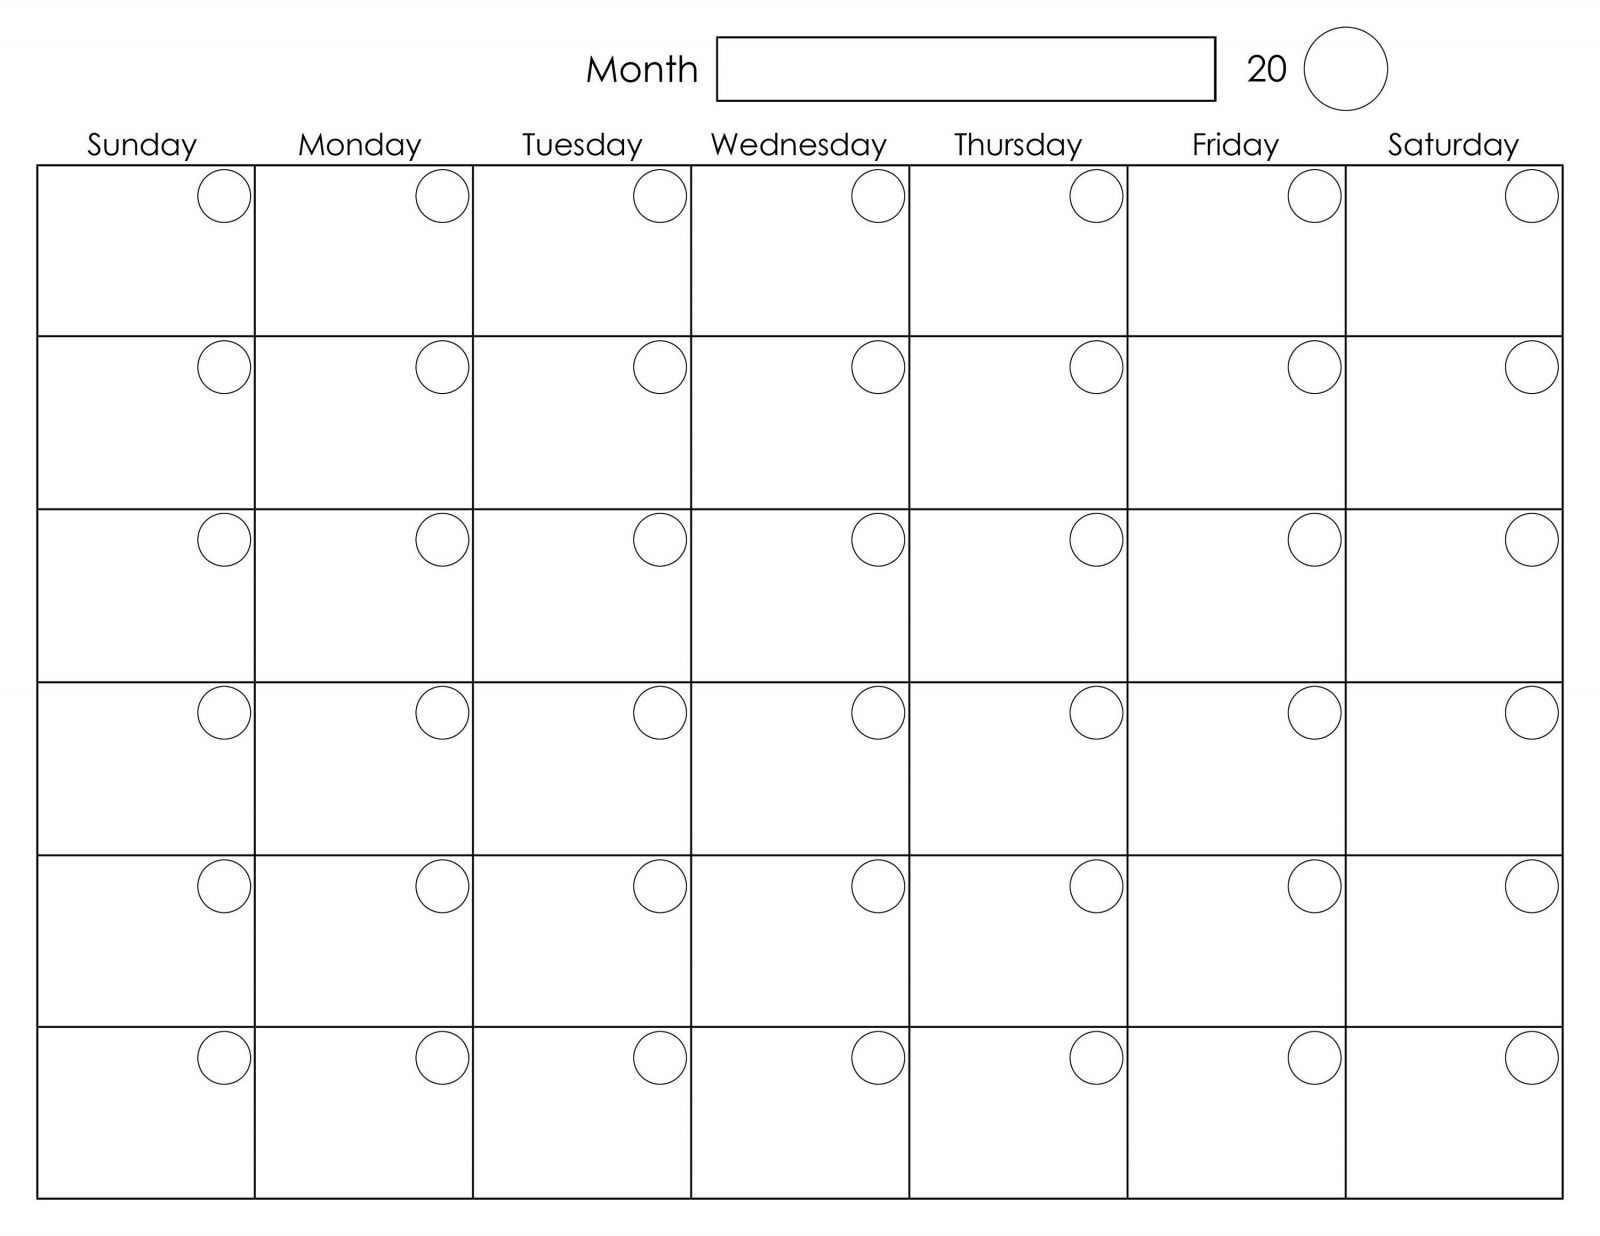 Free Blank Printable Calendar 2019 With Holidays Template-Blank Monthly Planner Starts On Monday